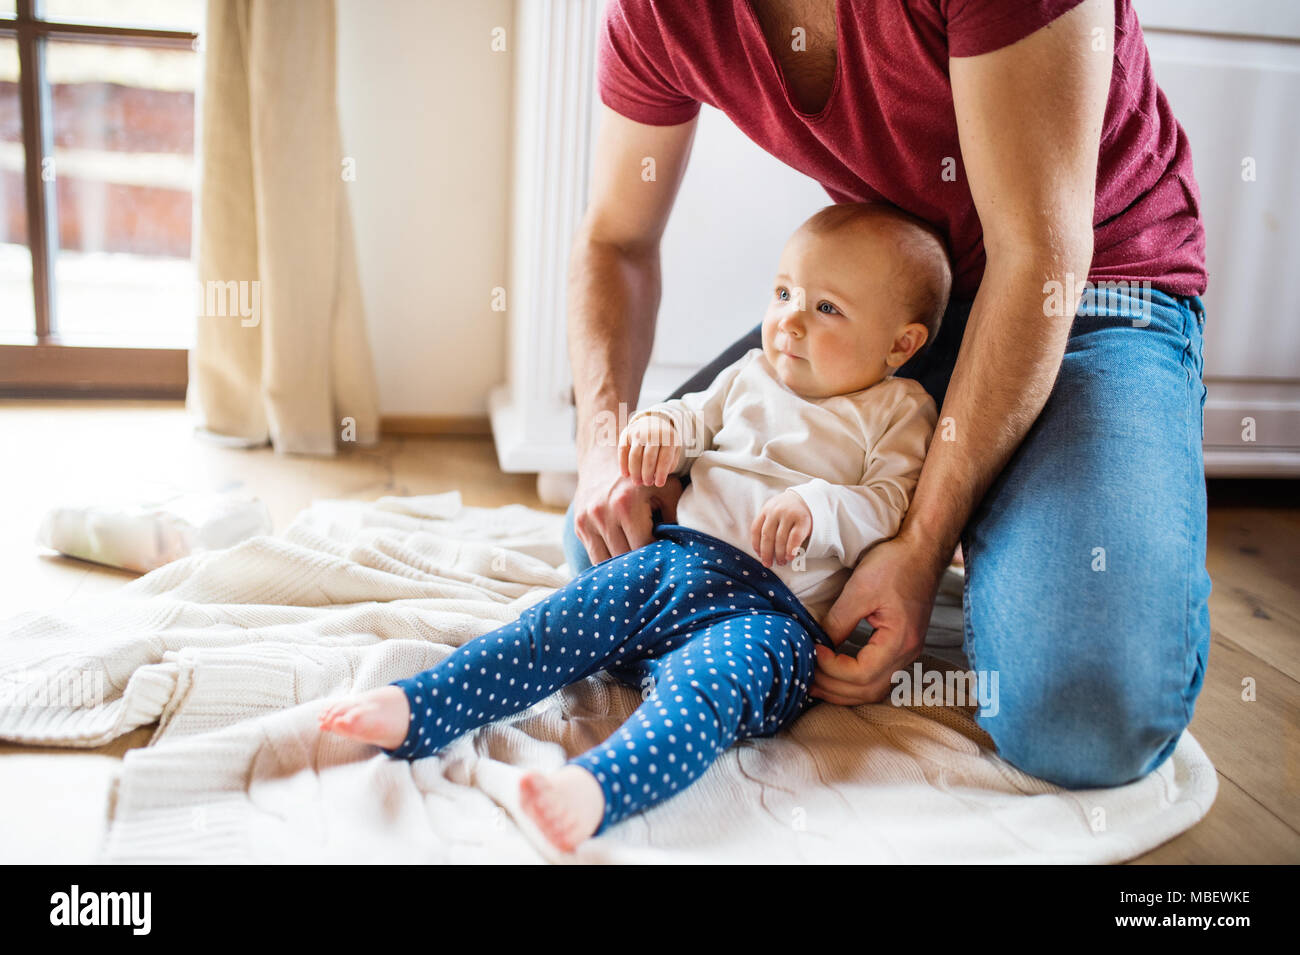 Unrecognizable father with a baby girl at home. Paternity leave. - Stock Image